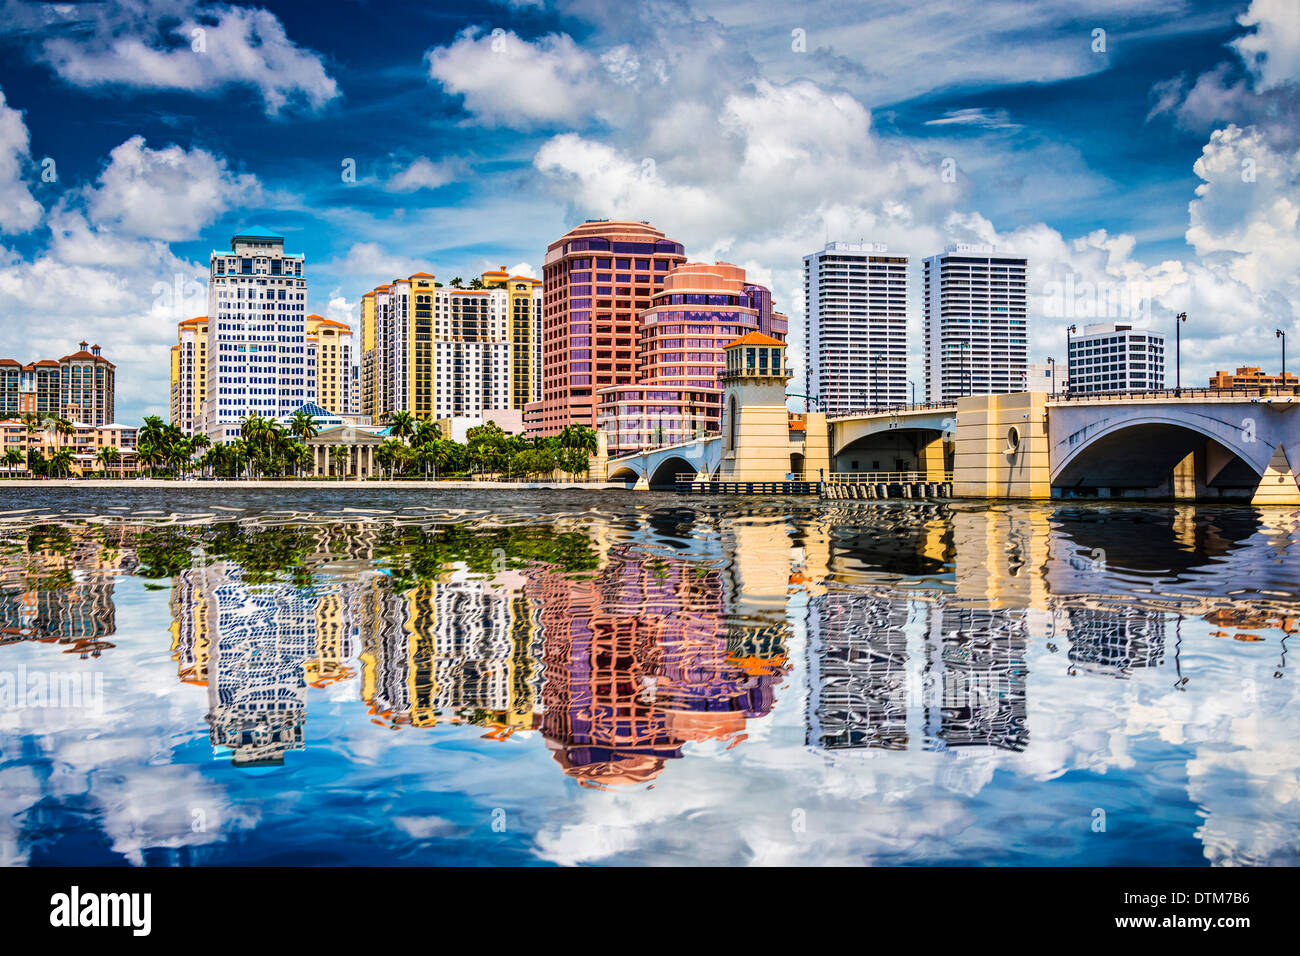 West Palm Beach, Florida, USA downtown over the intracoastal waterway. - Stock Image